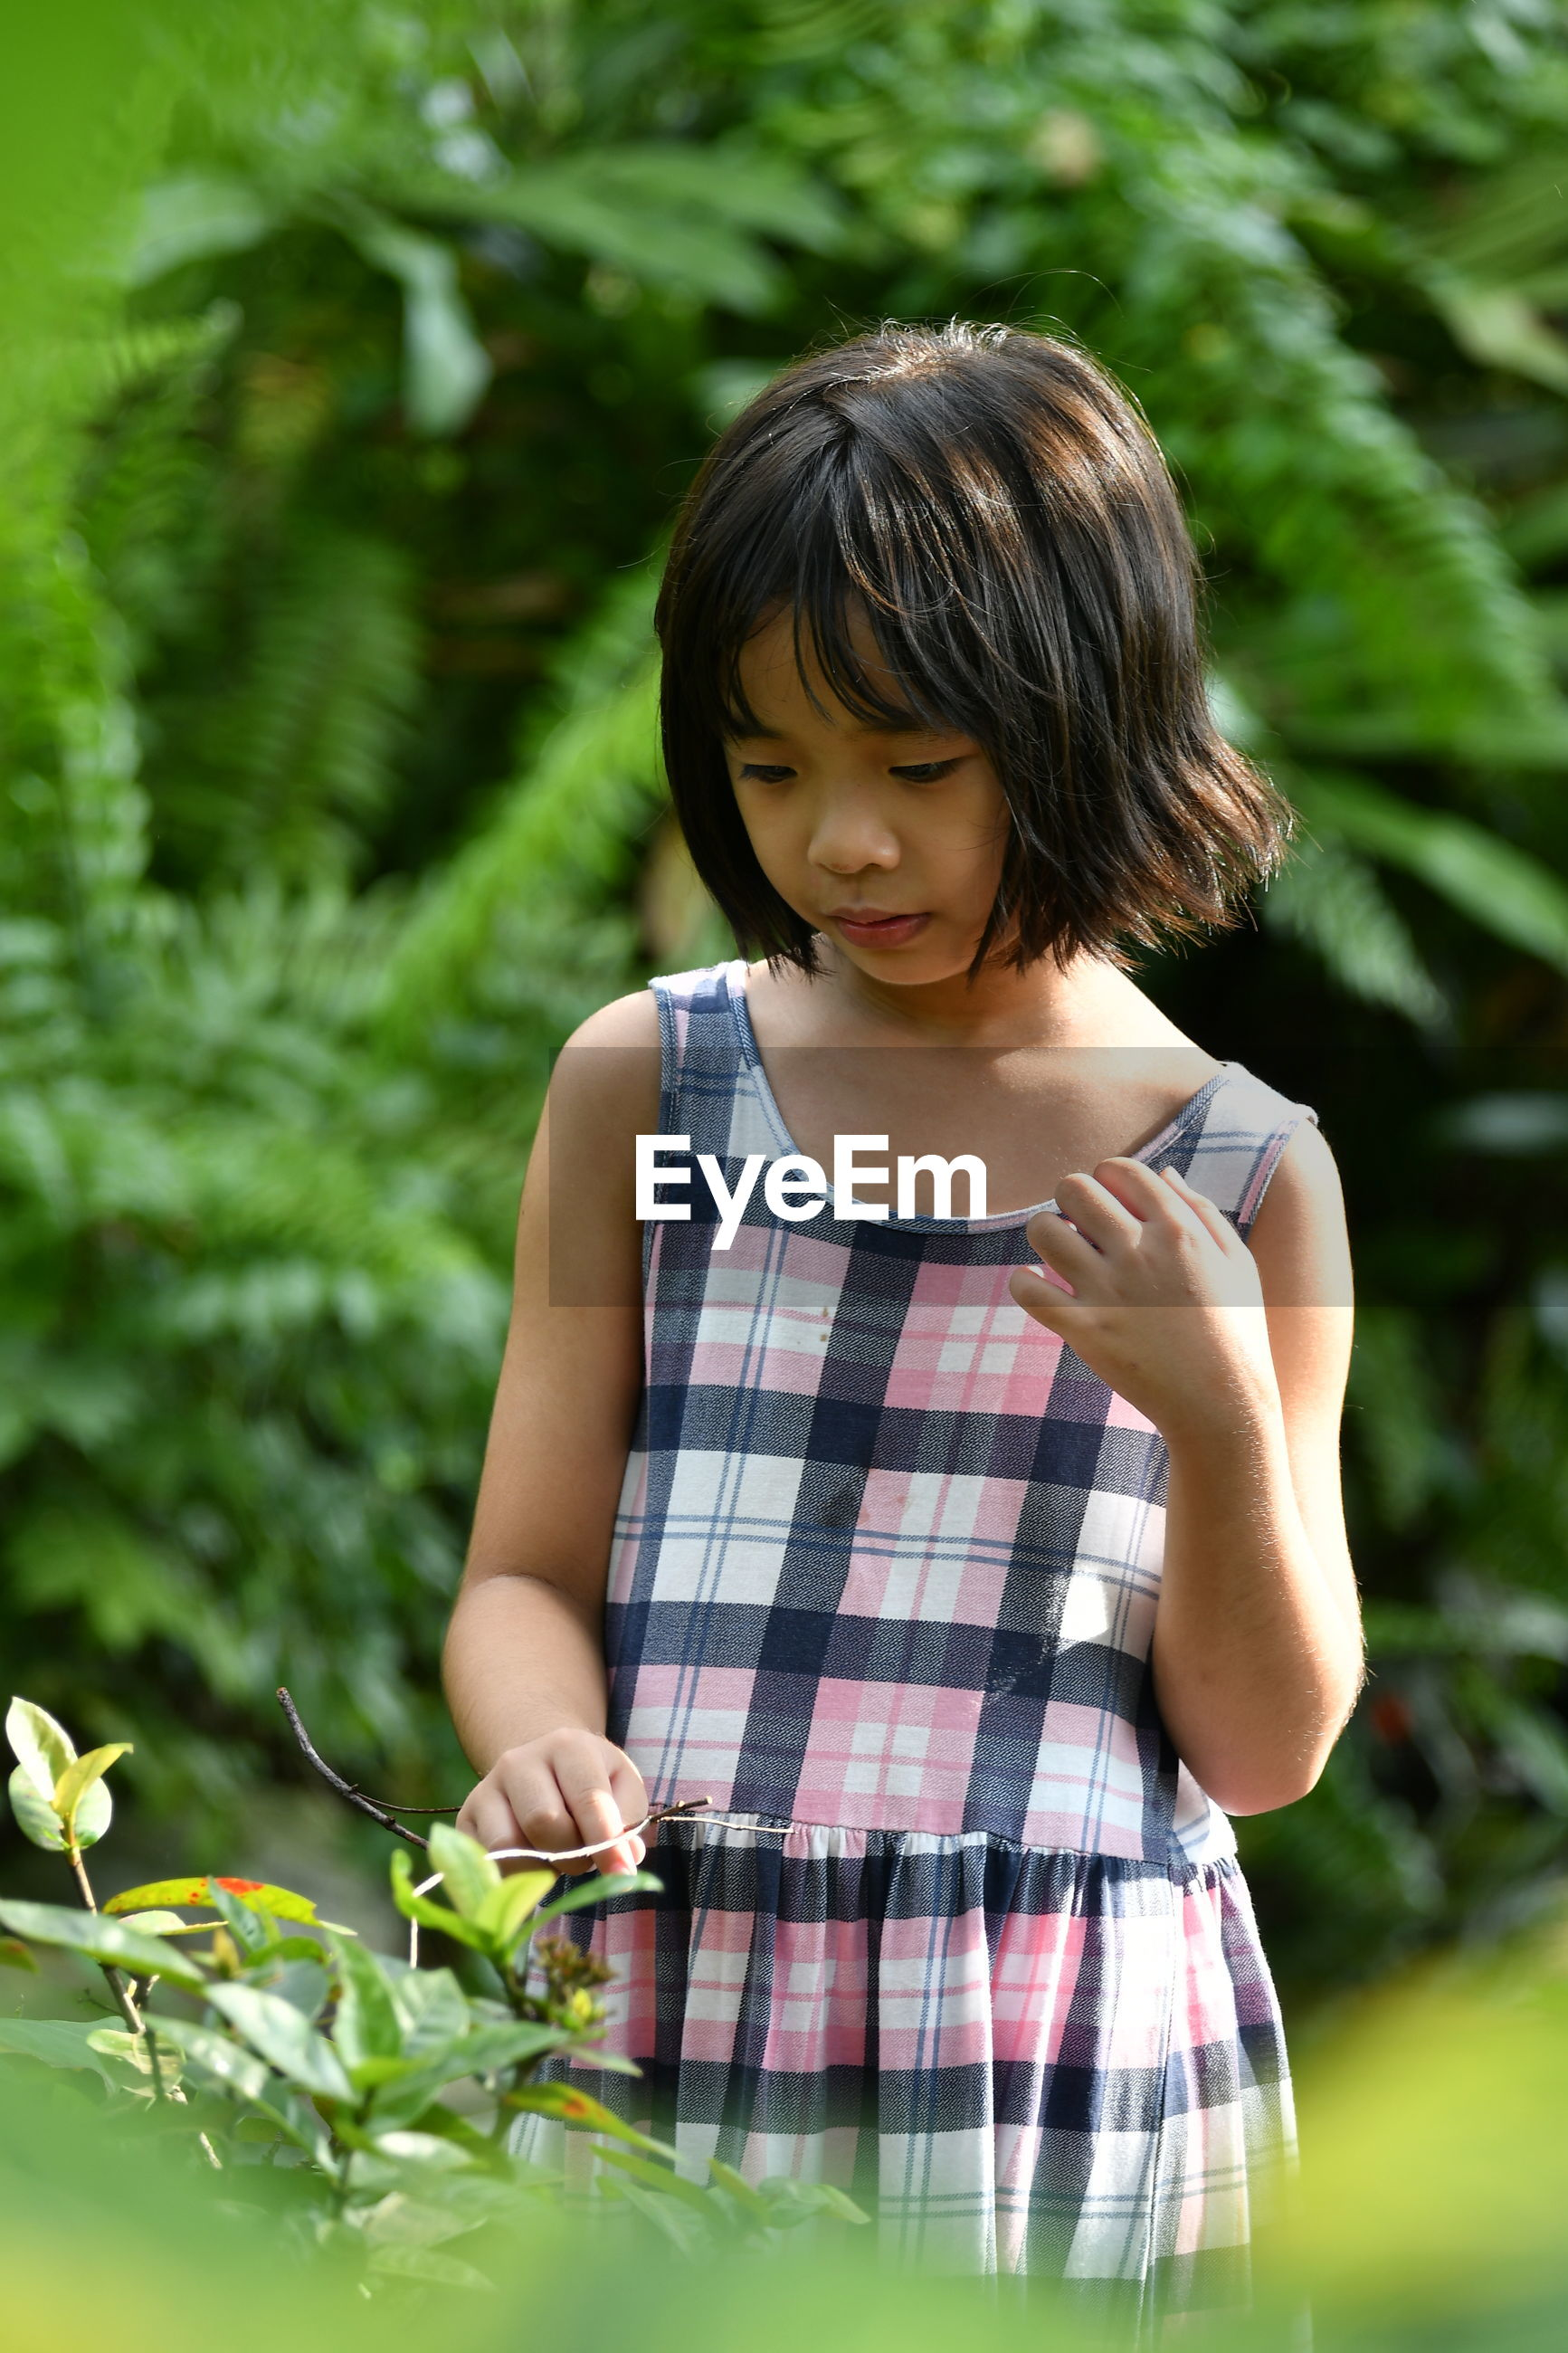 Girl touching leaf while standing against plants